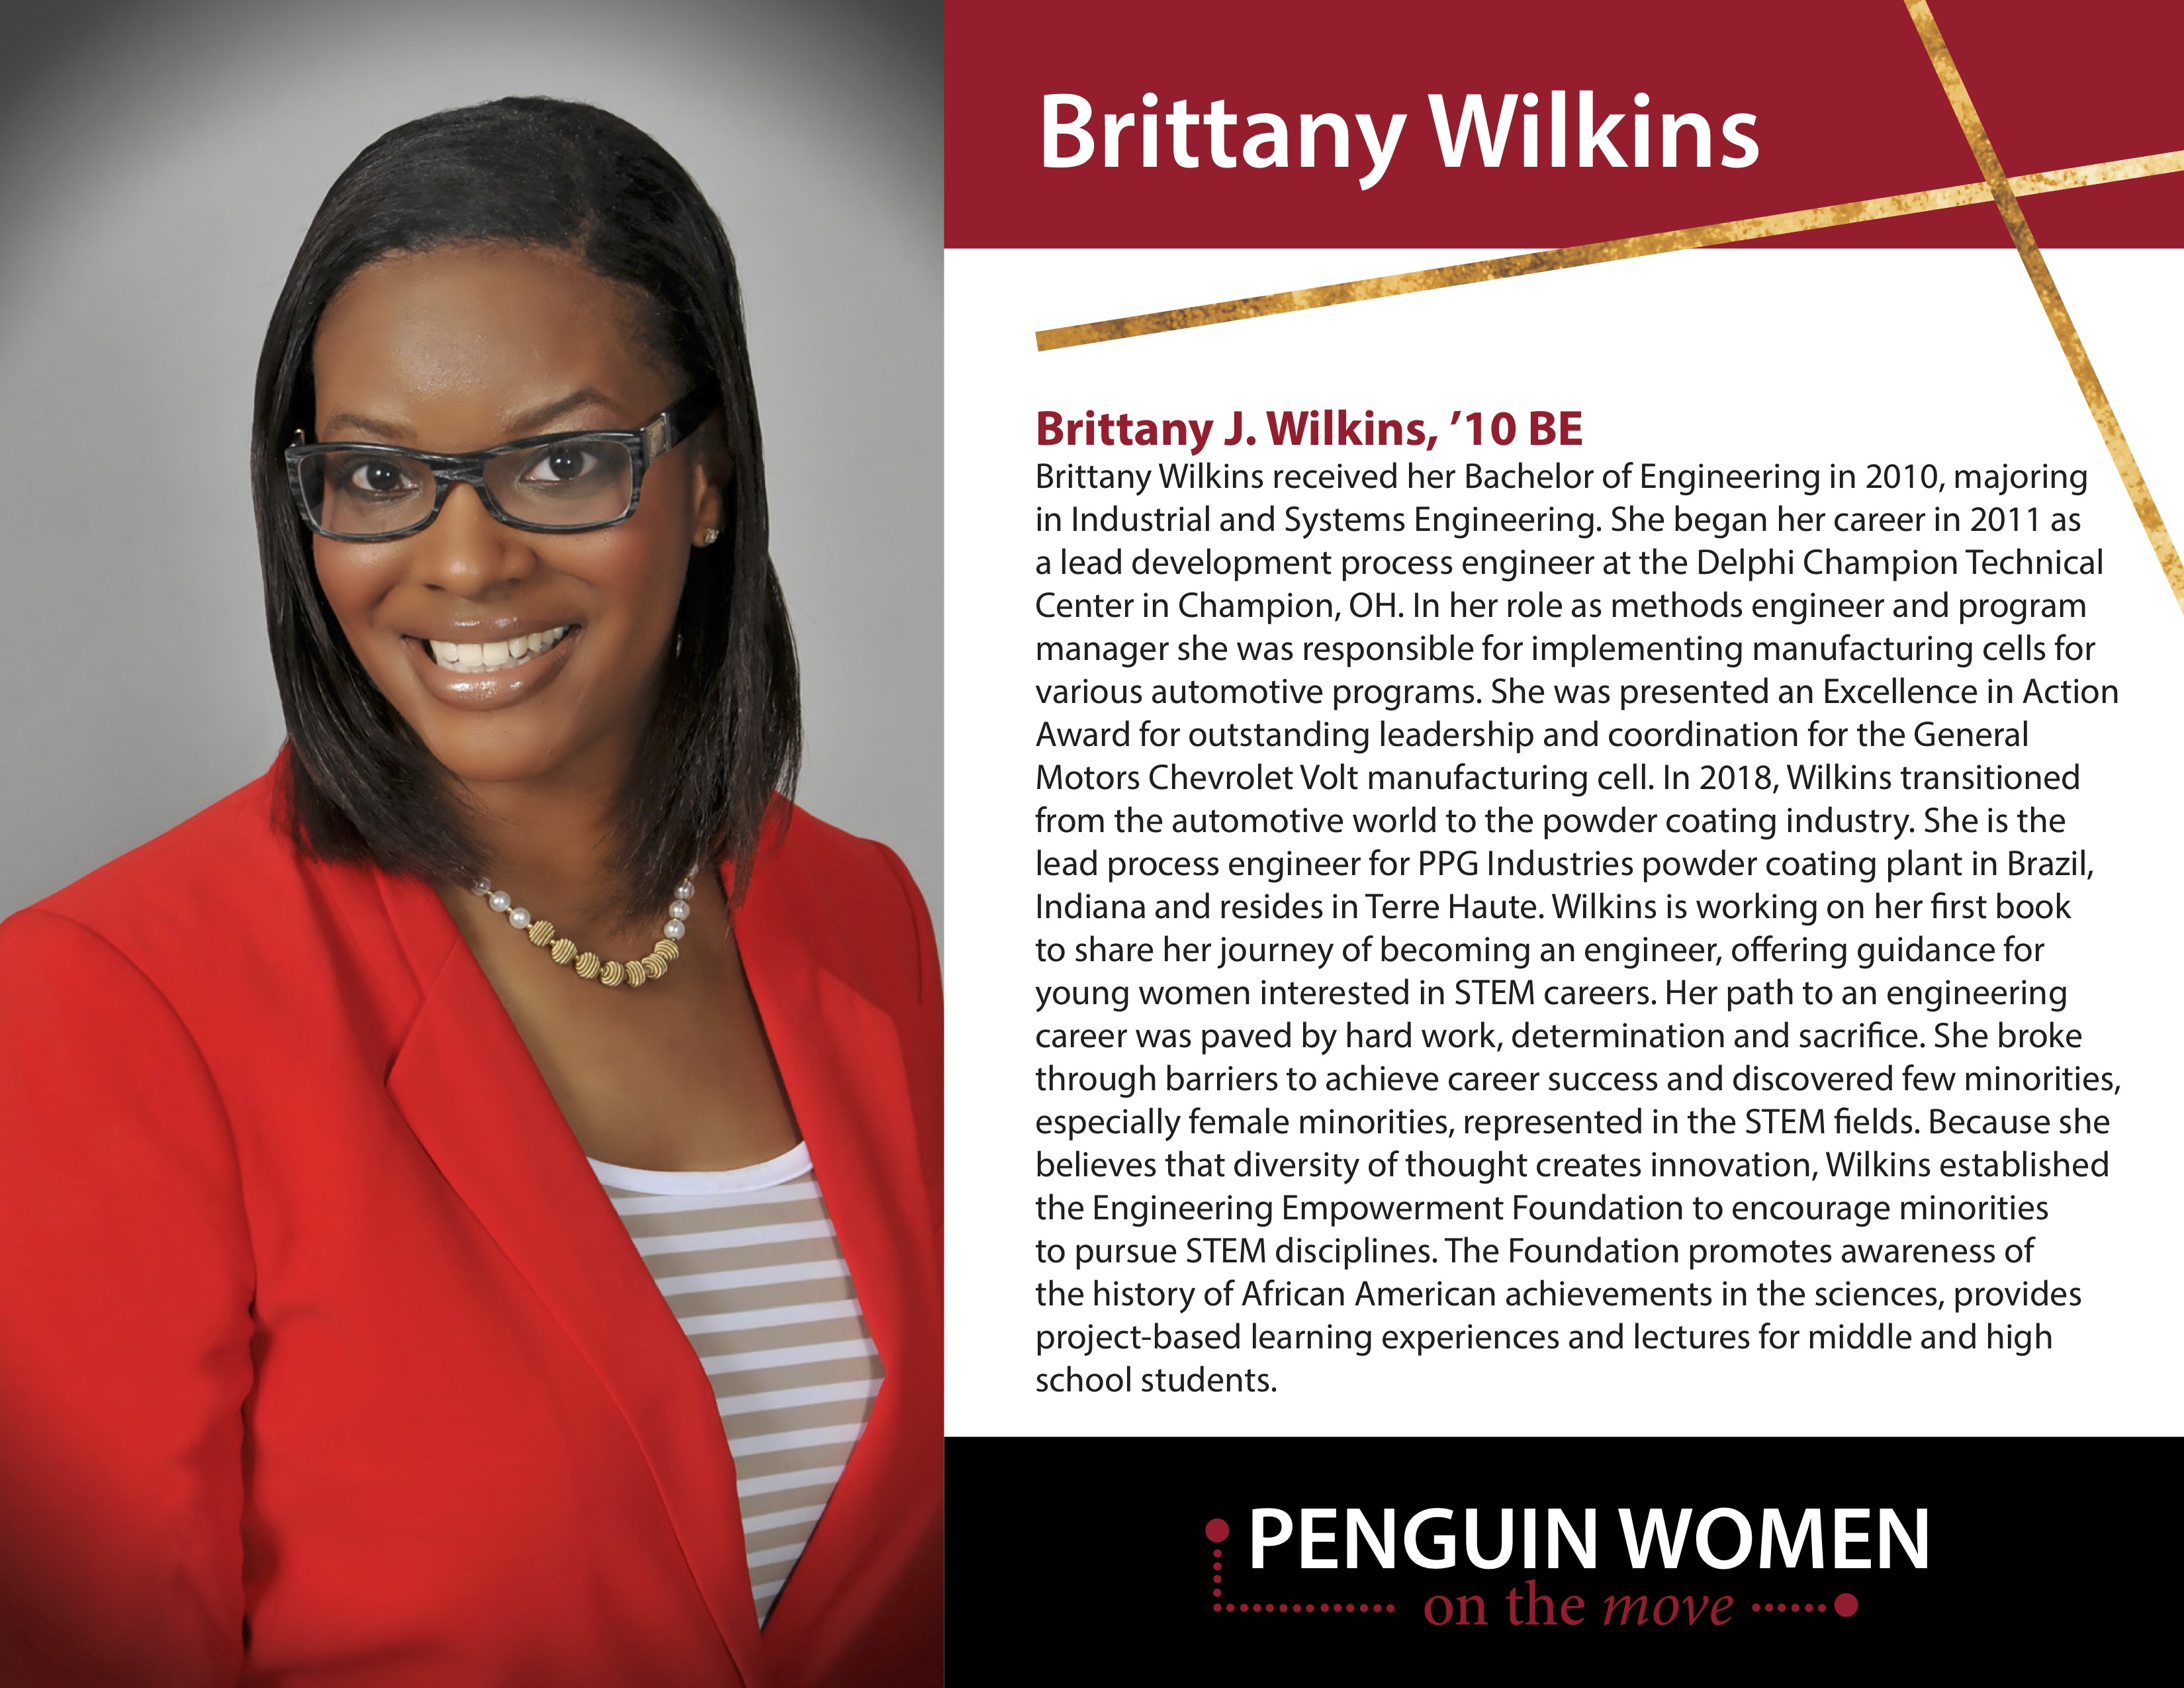 Brittany Wilkins